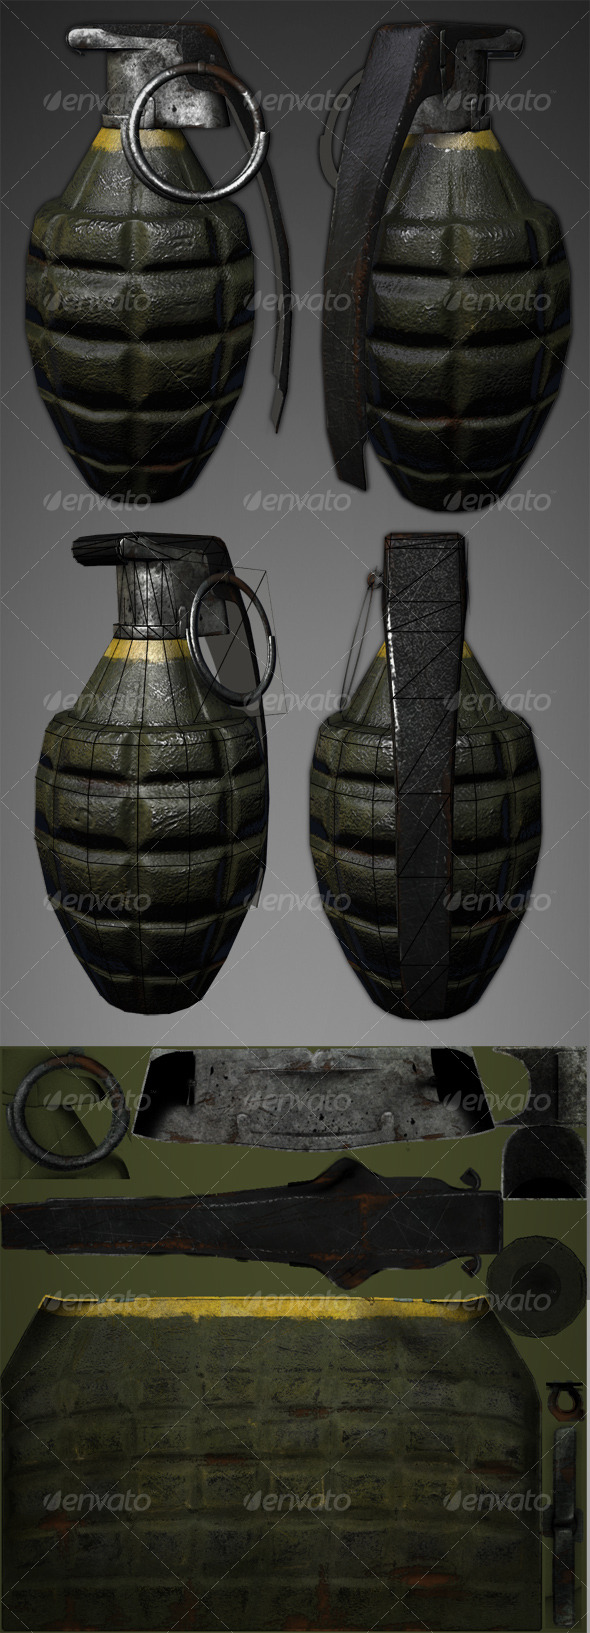 Lowpoly Pineapple Grenade - 3DOcean Item for Sale